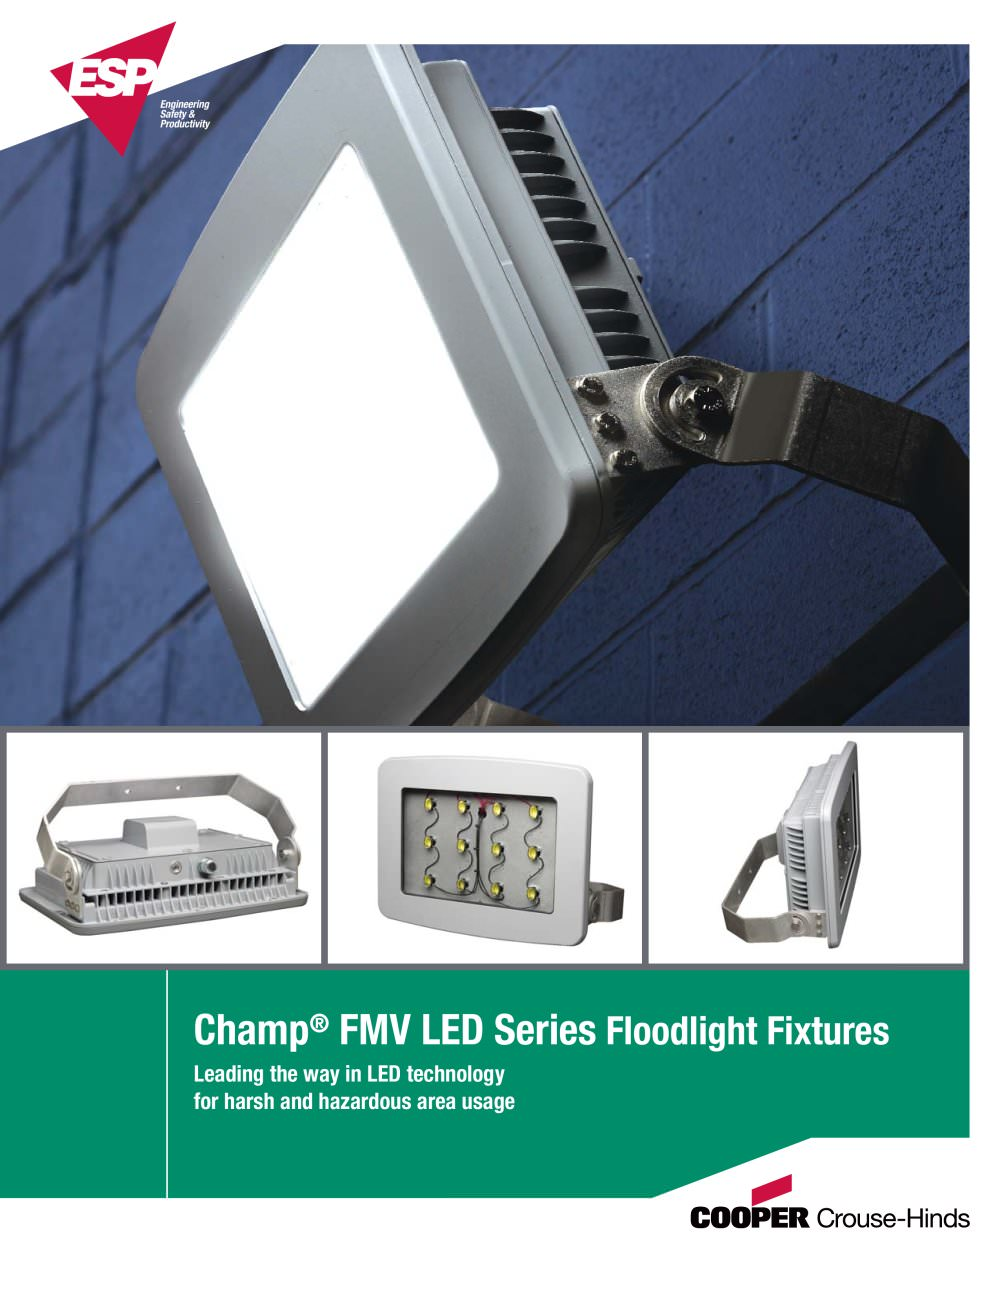 Led floodlight brochure cooper crouse hinds pauluhn pdf led floodlight brochure 1 8 pages arubaitofo Choice Image